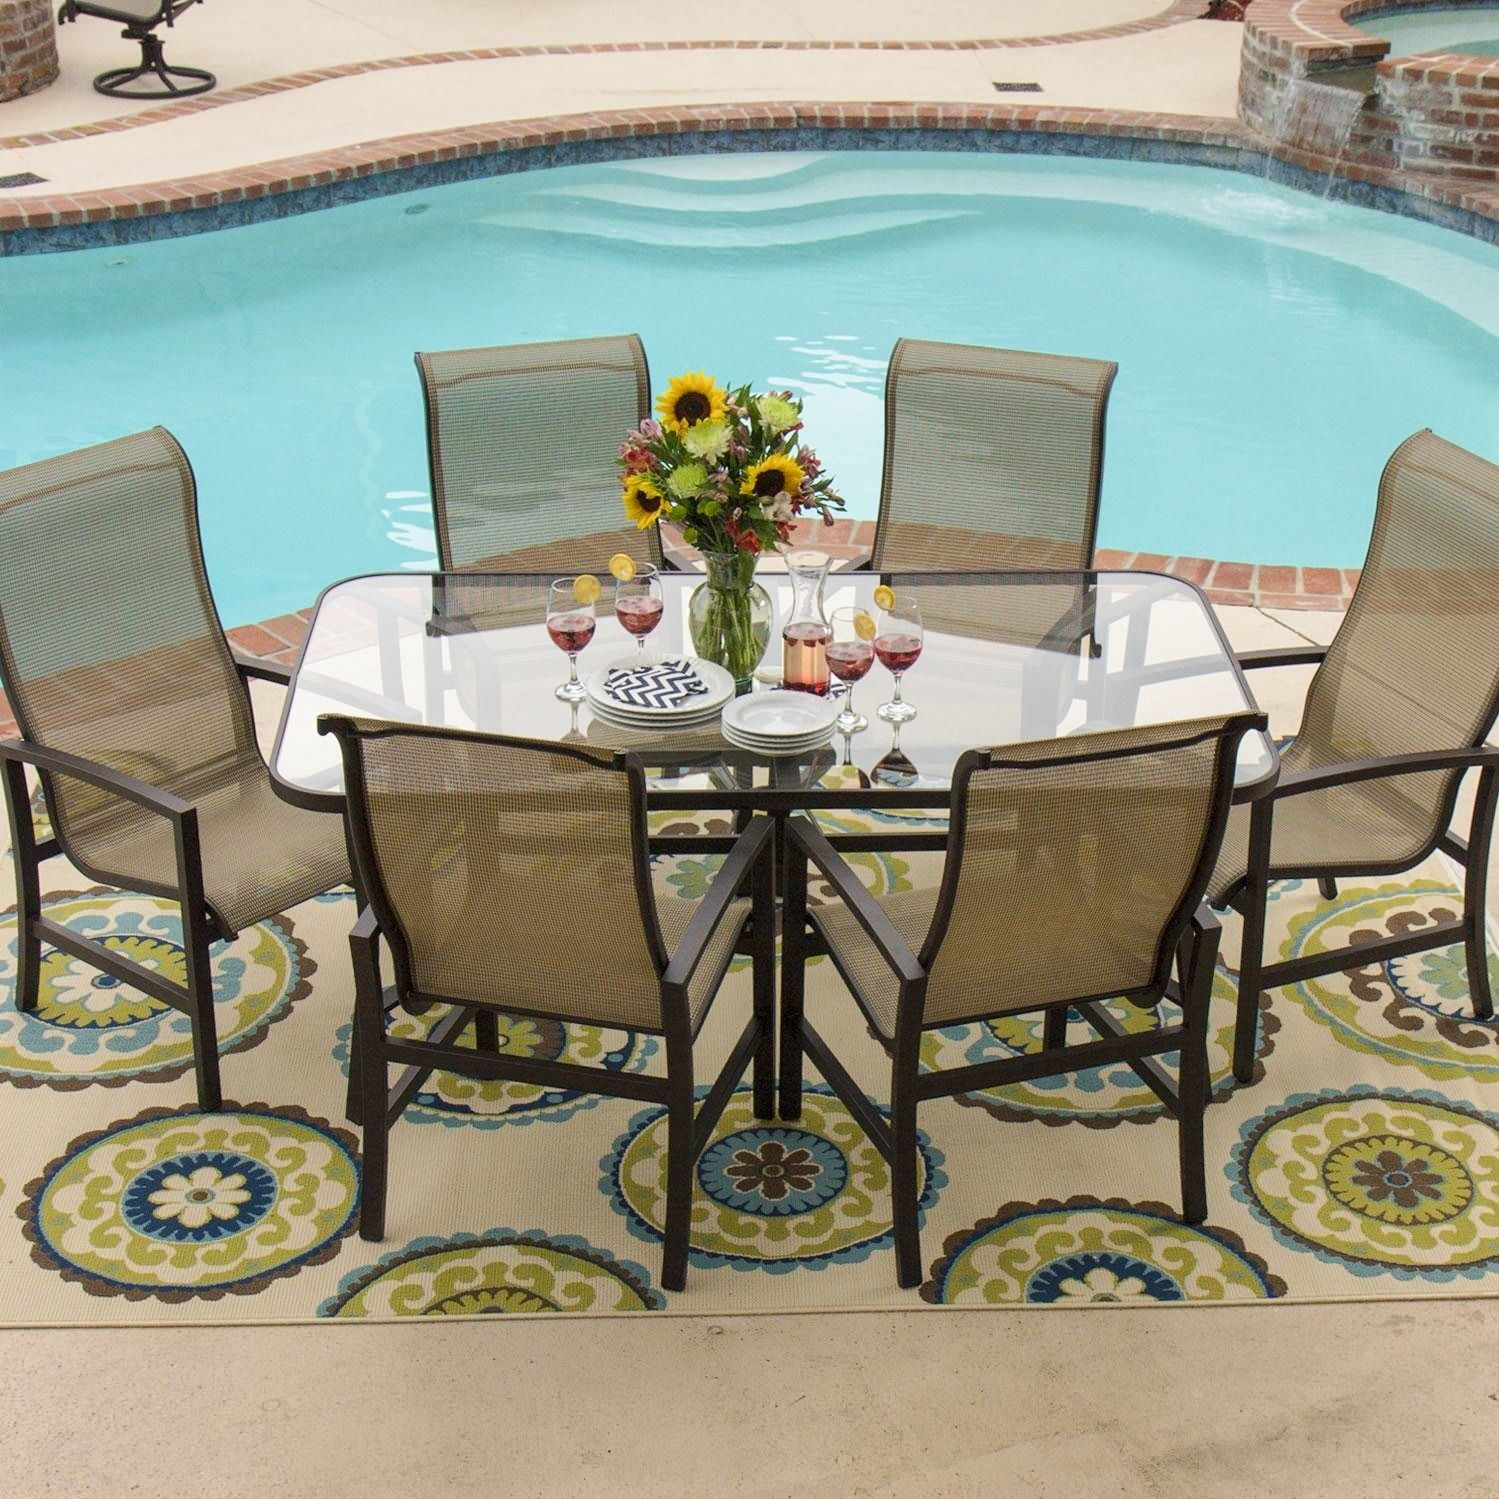 Lakeview Outdoor Designs Acadia 6 person Sling Patio Dining Set